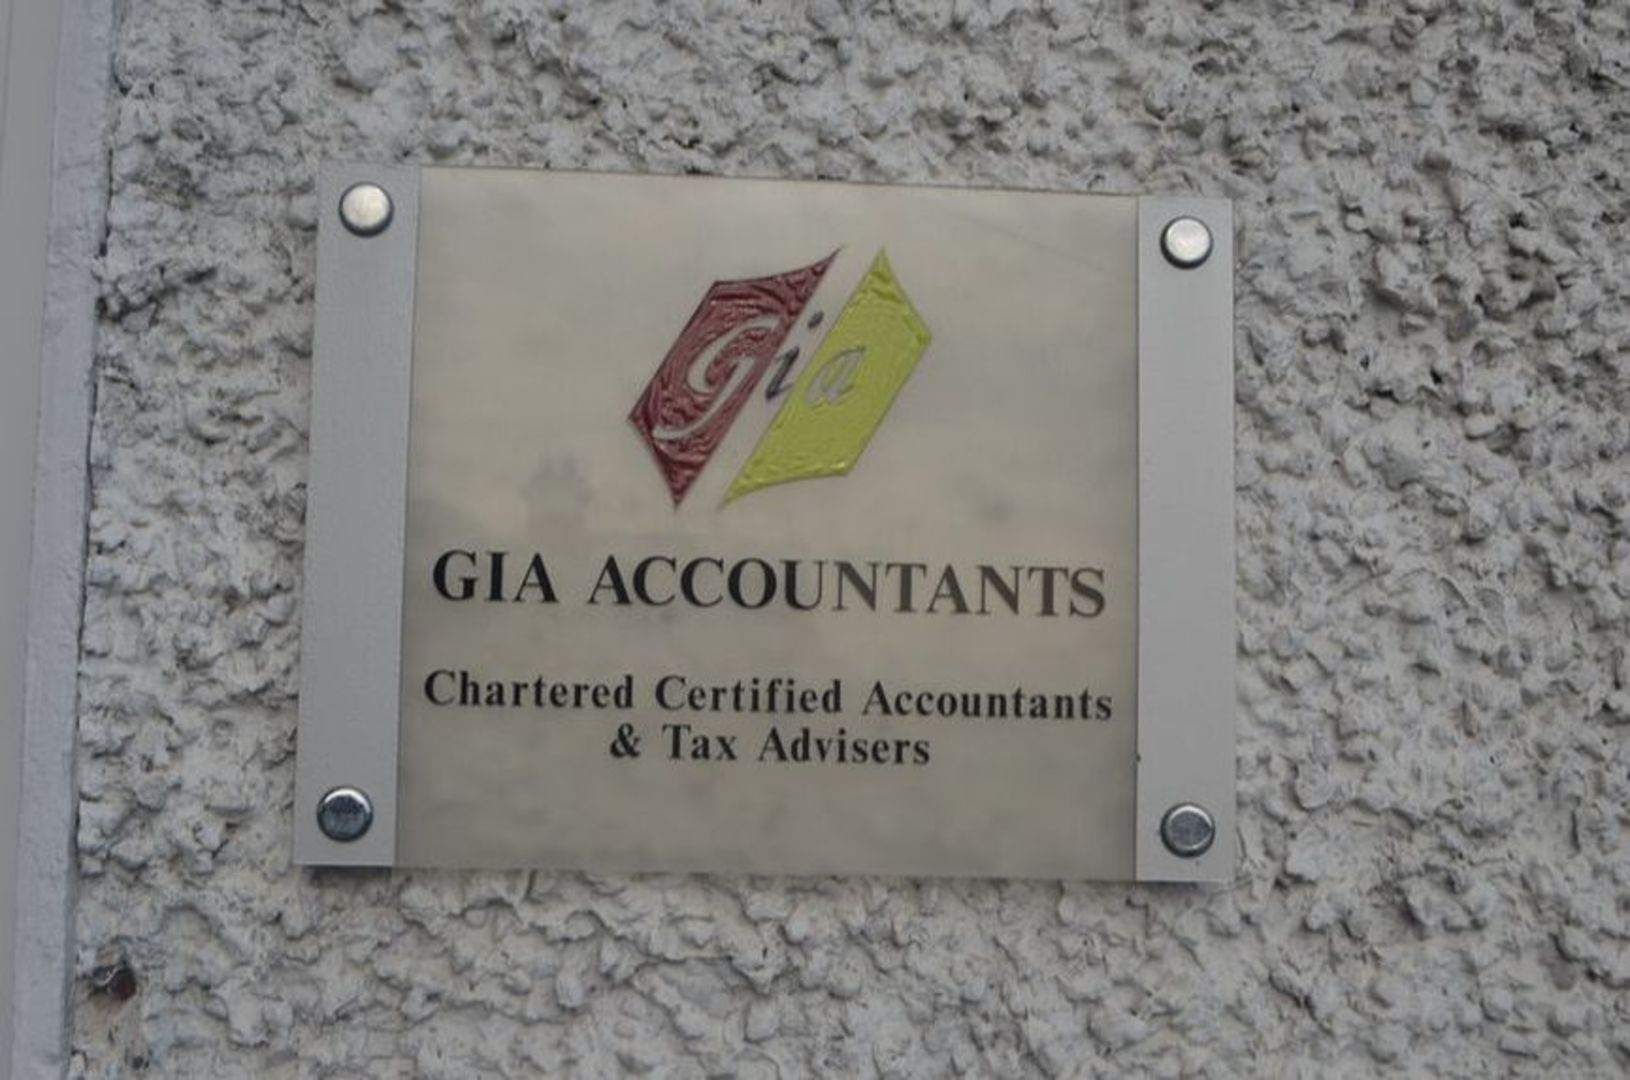 GIA Accountants